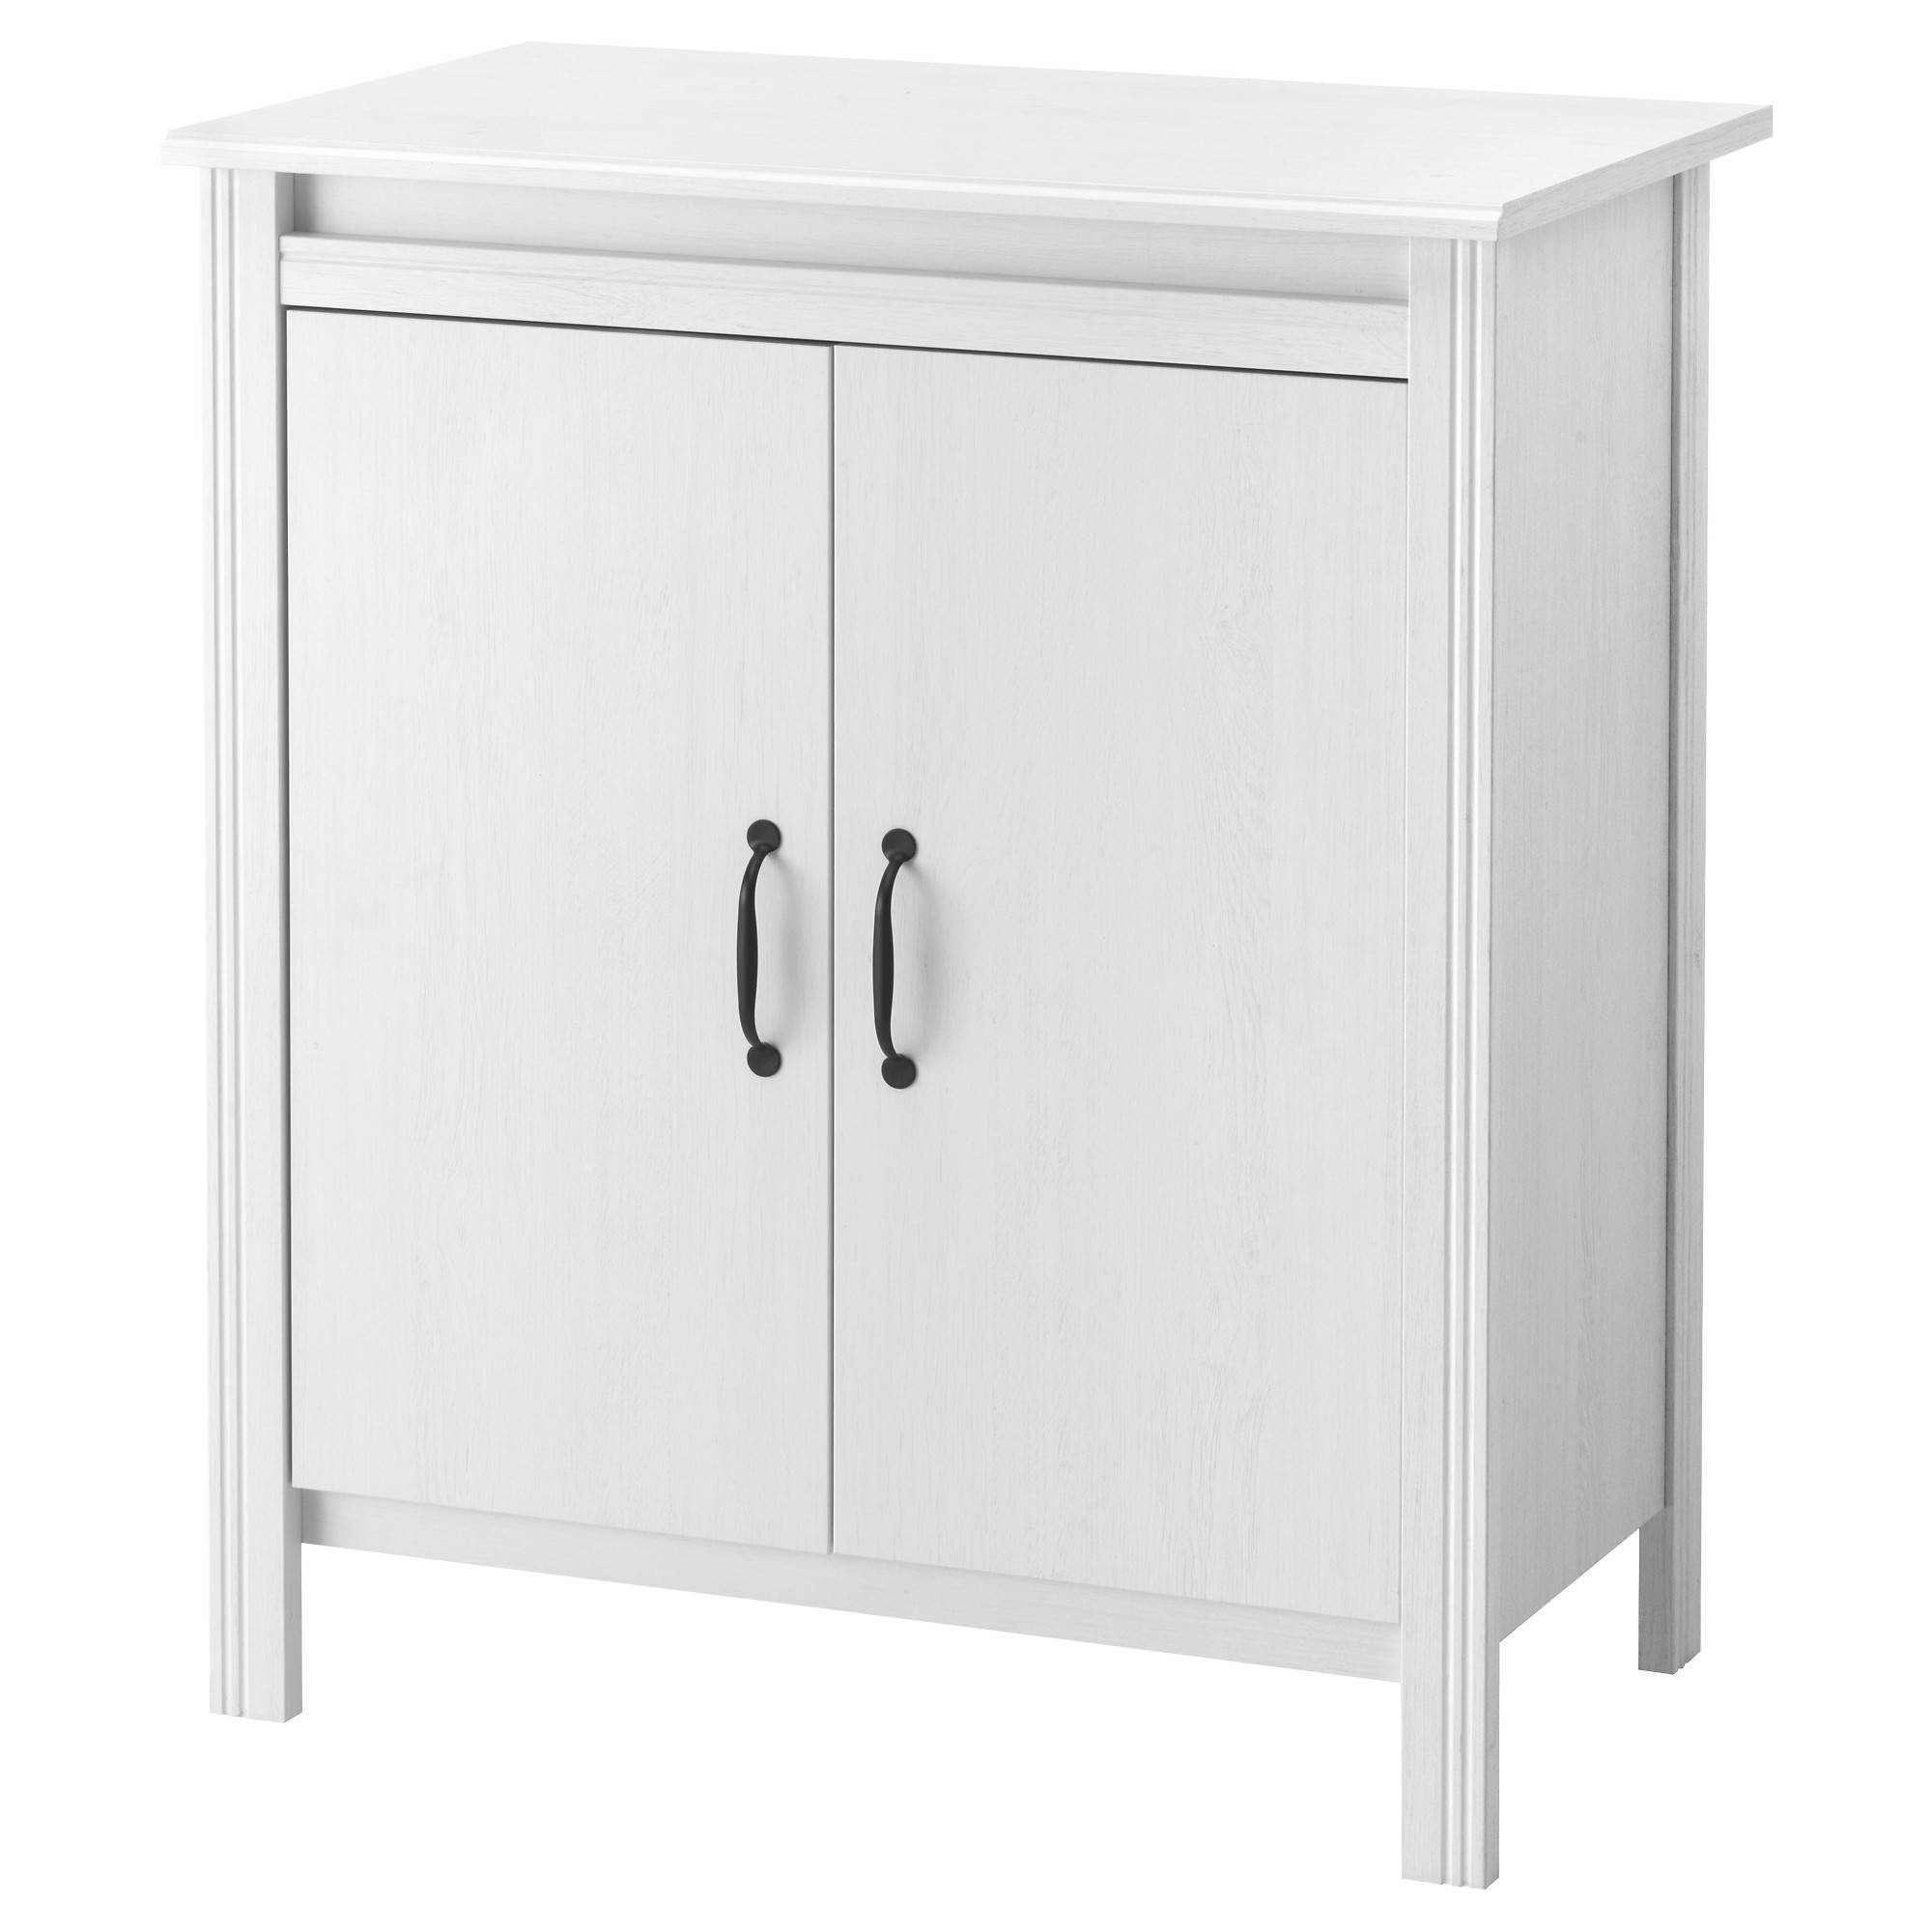 Cabinets & Sideboards - Ikea pertaining to Small White Sideboards (Image 6 of 30)